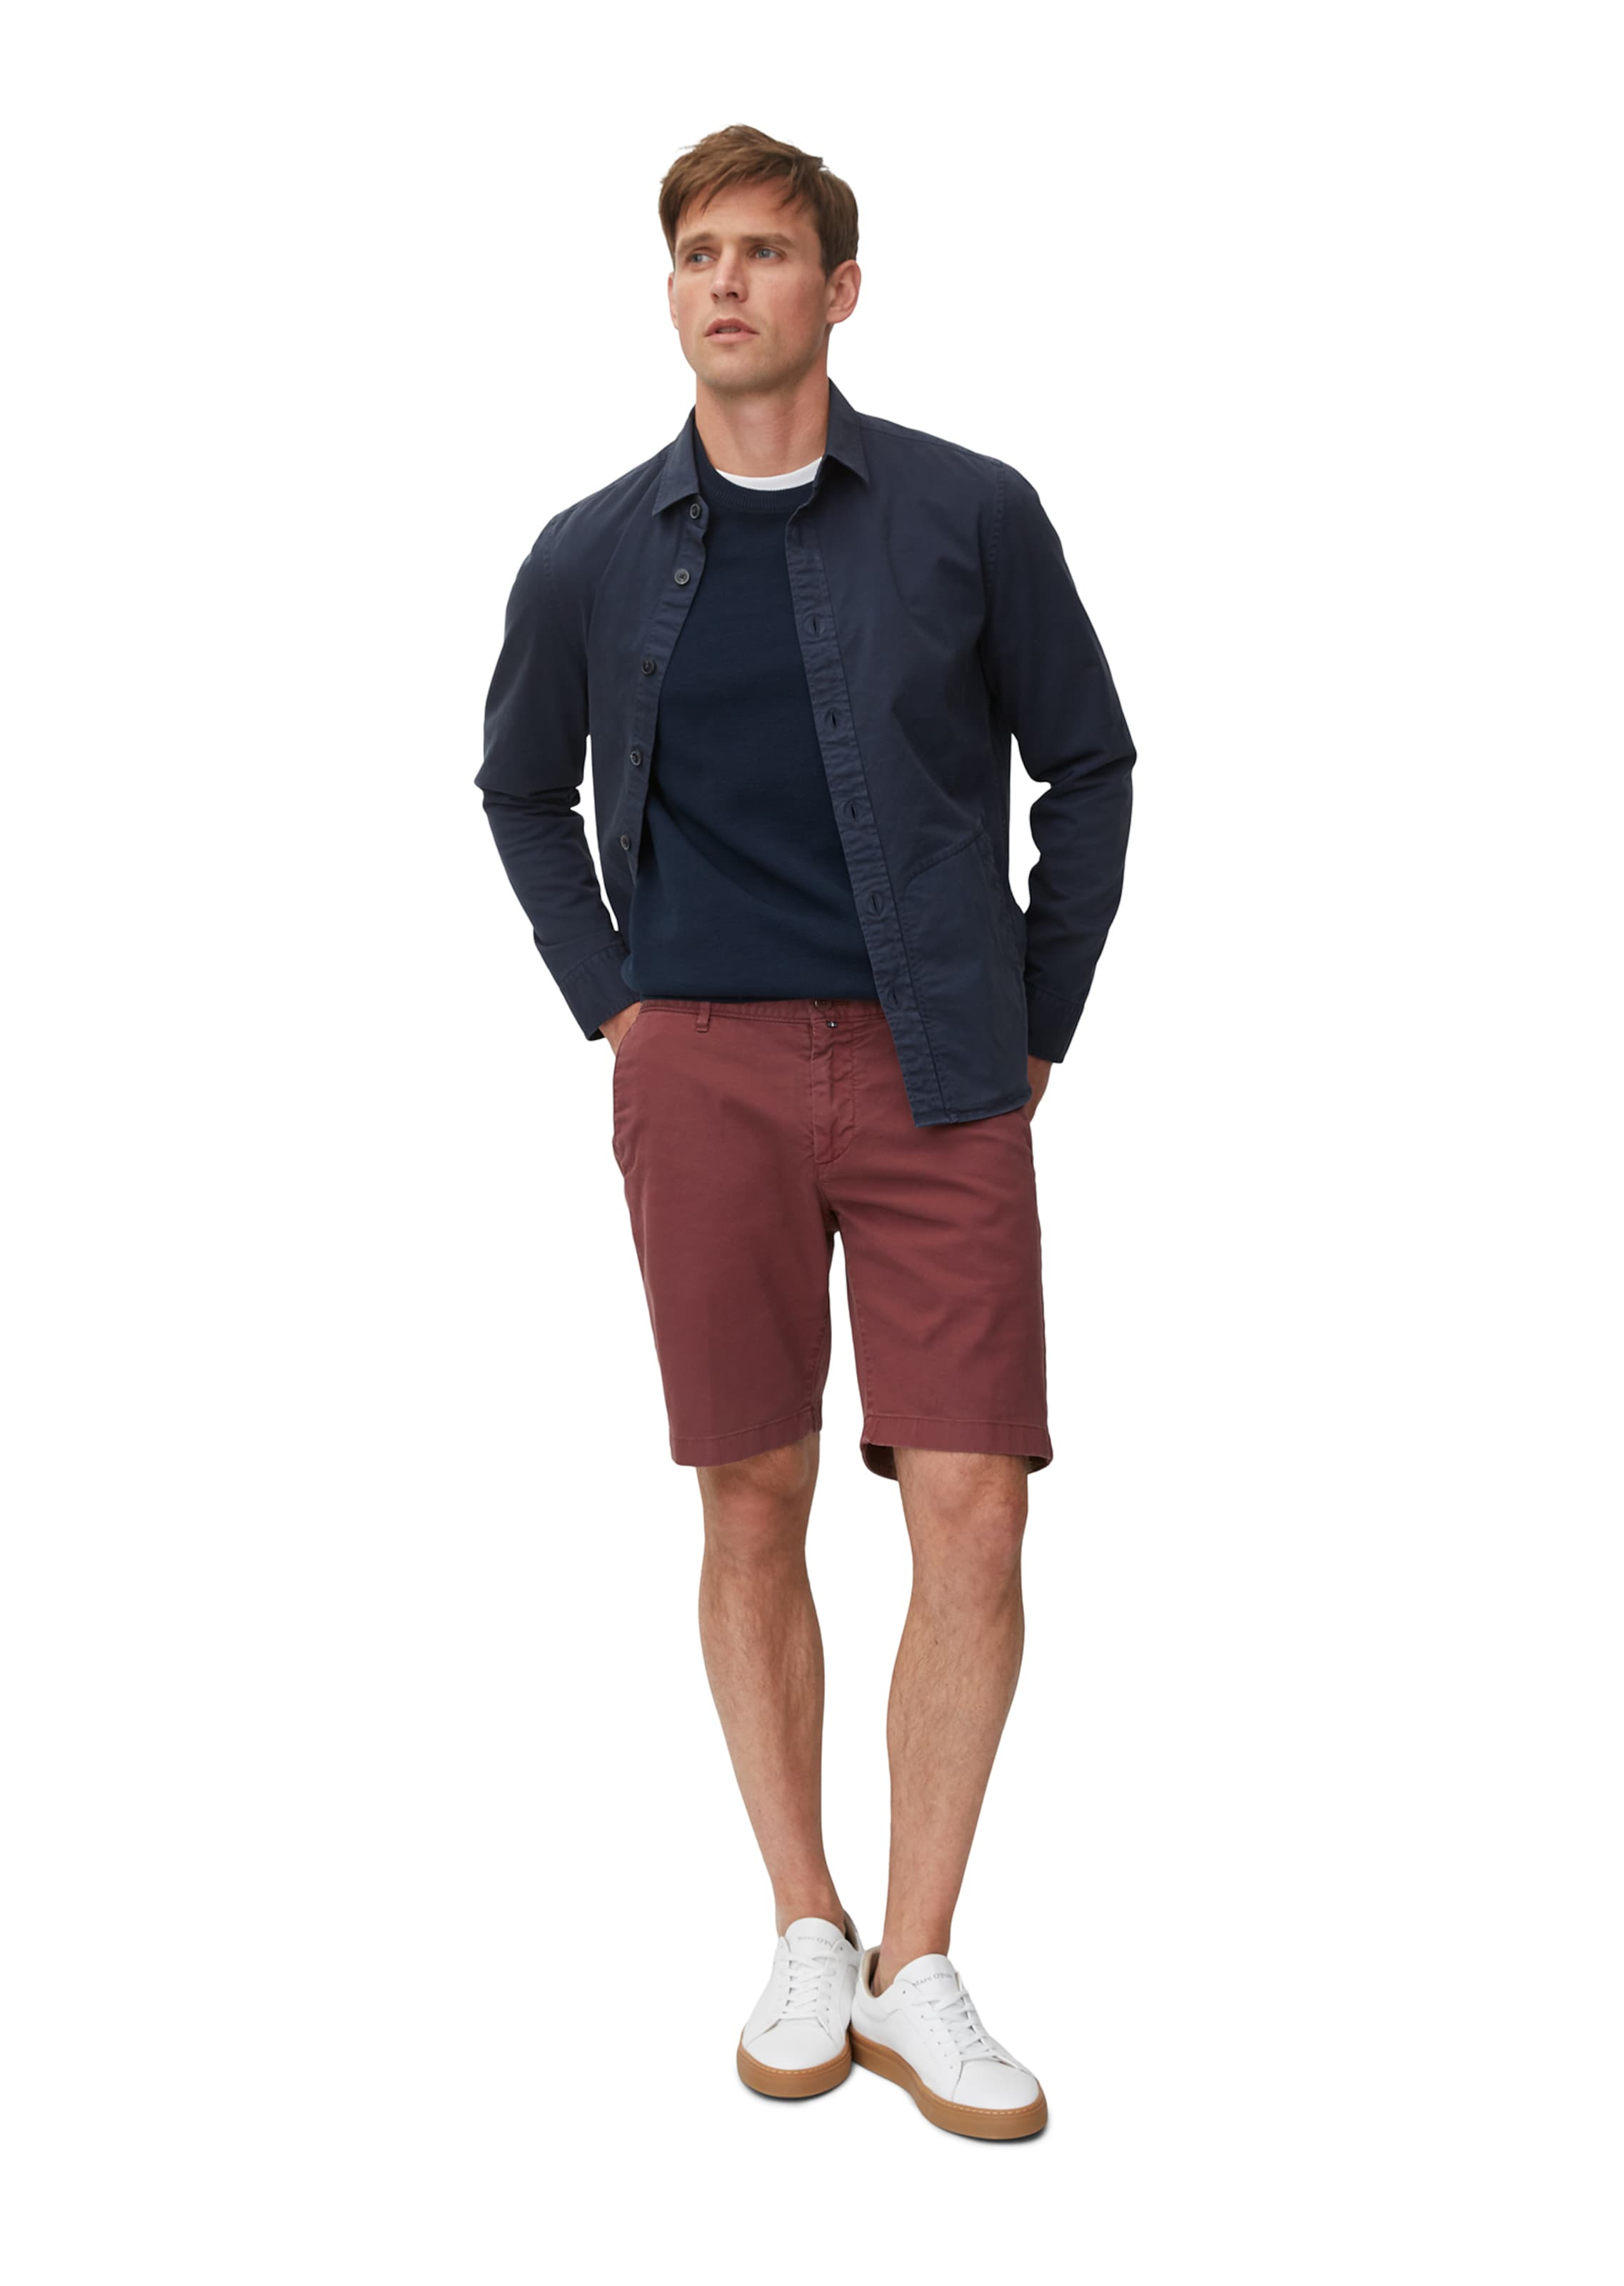 'salo' shorts Chino Beere Marc O'polo In uc5K1JTlF3